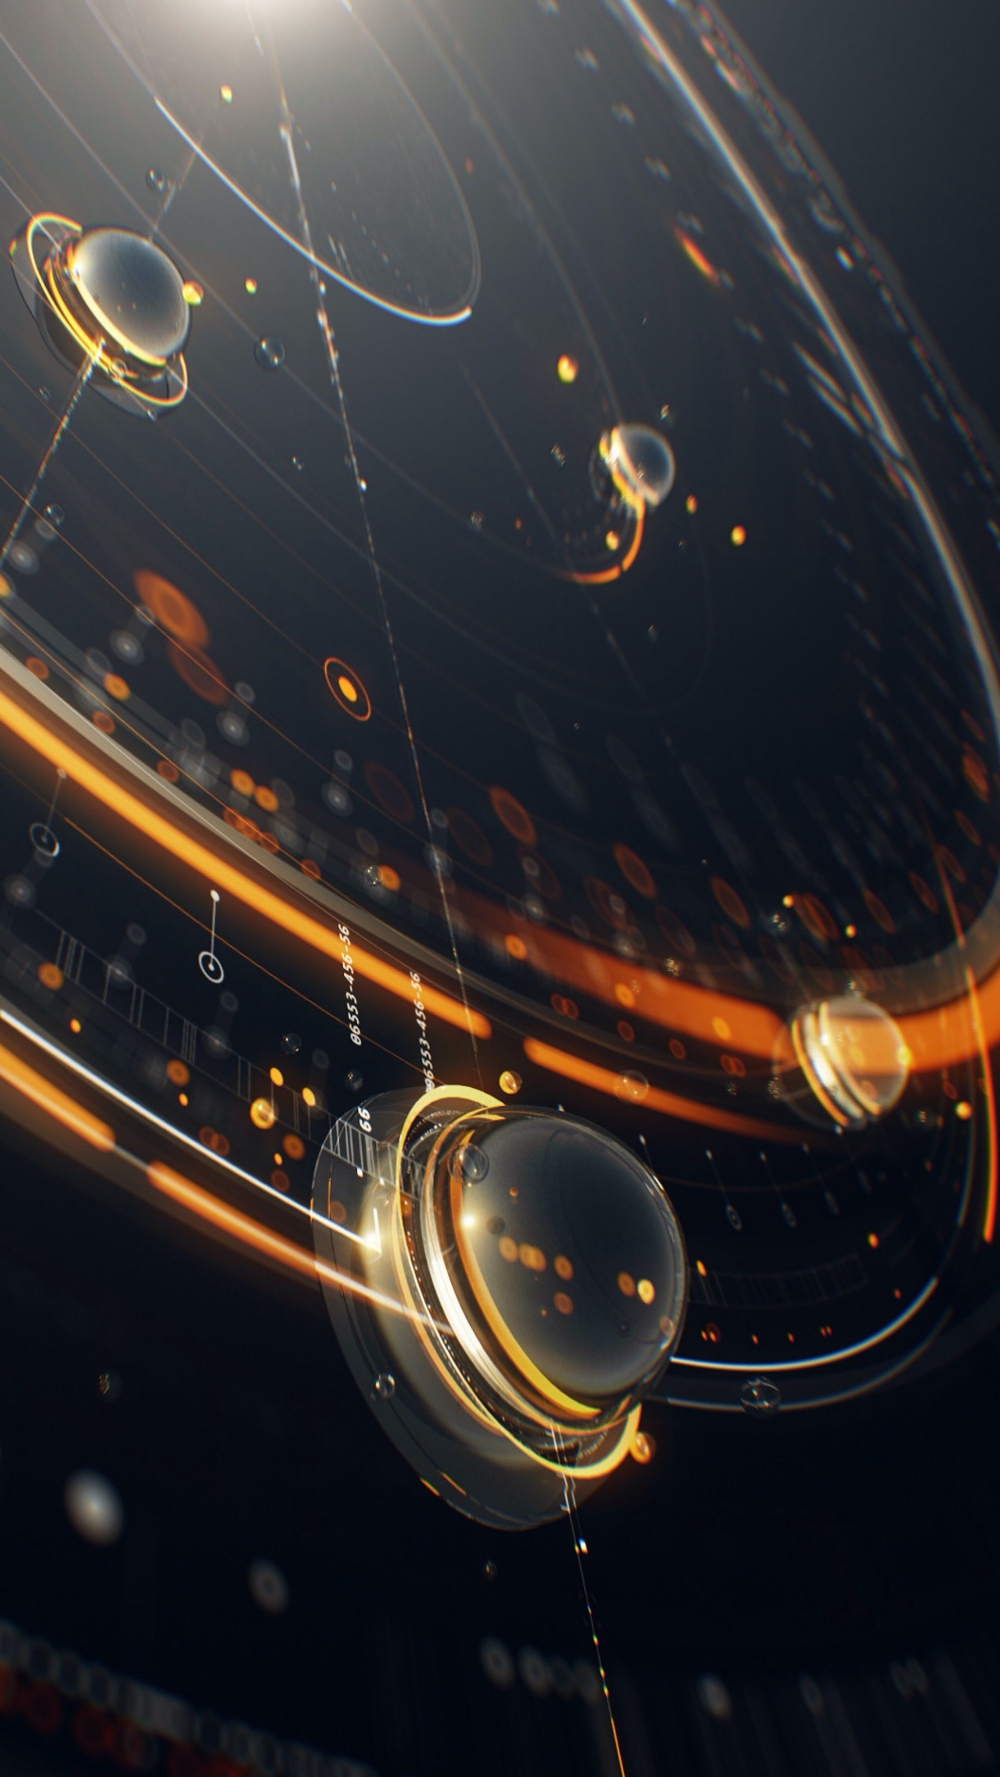 Pin by Adam on AF & Cinema 4D Technology wallpaper